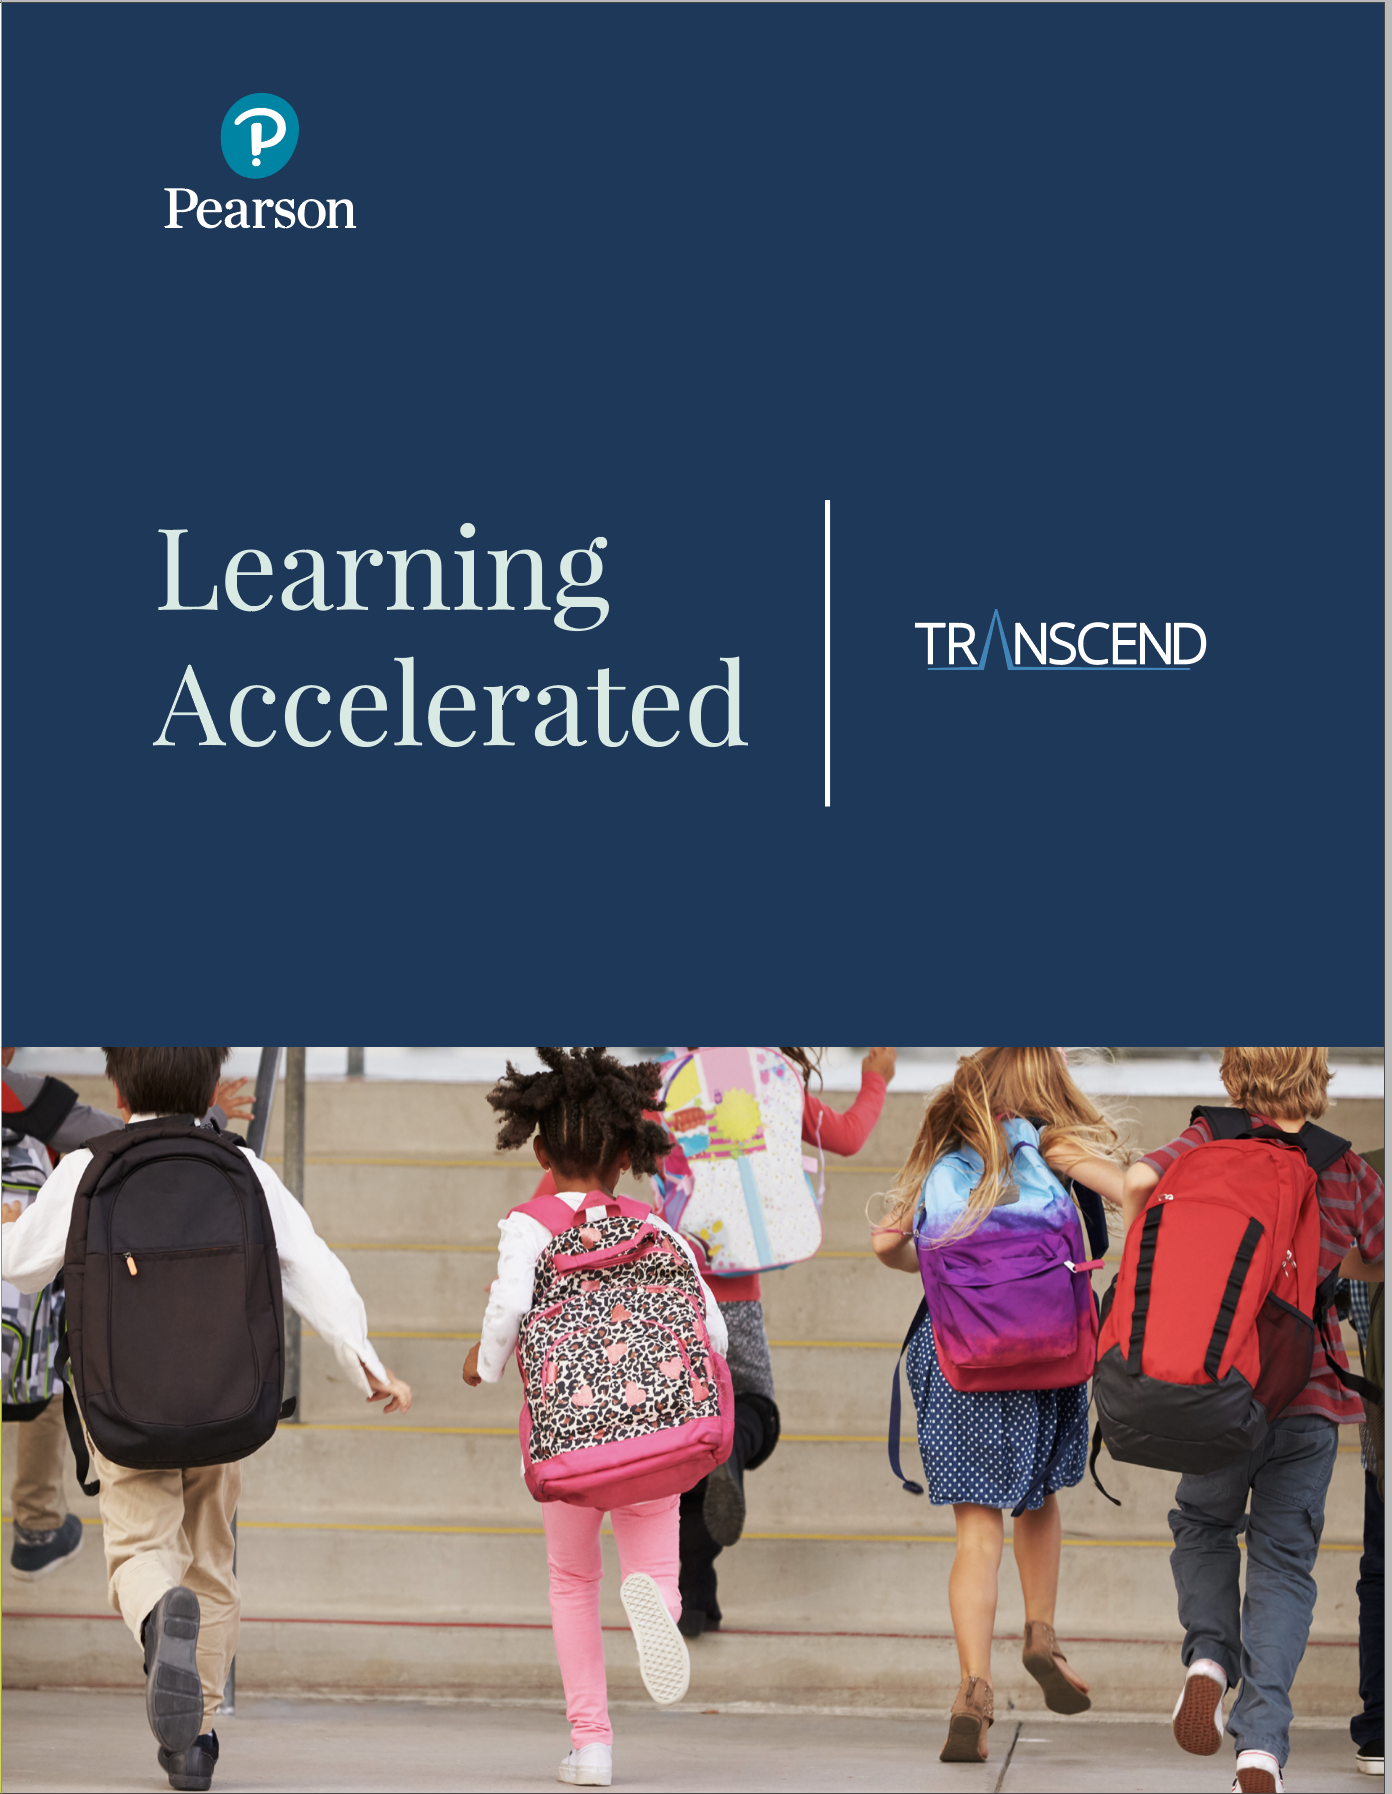 Transcend Brochure Cover - Text: Learning Accelerated